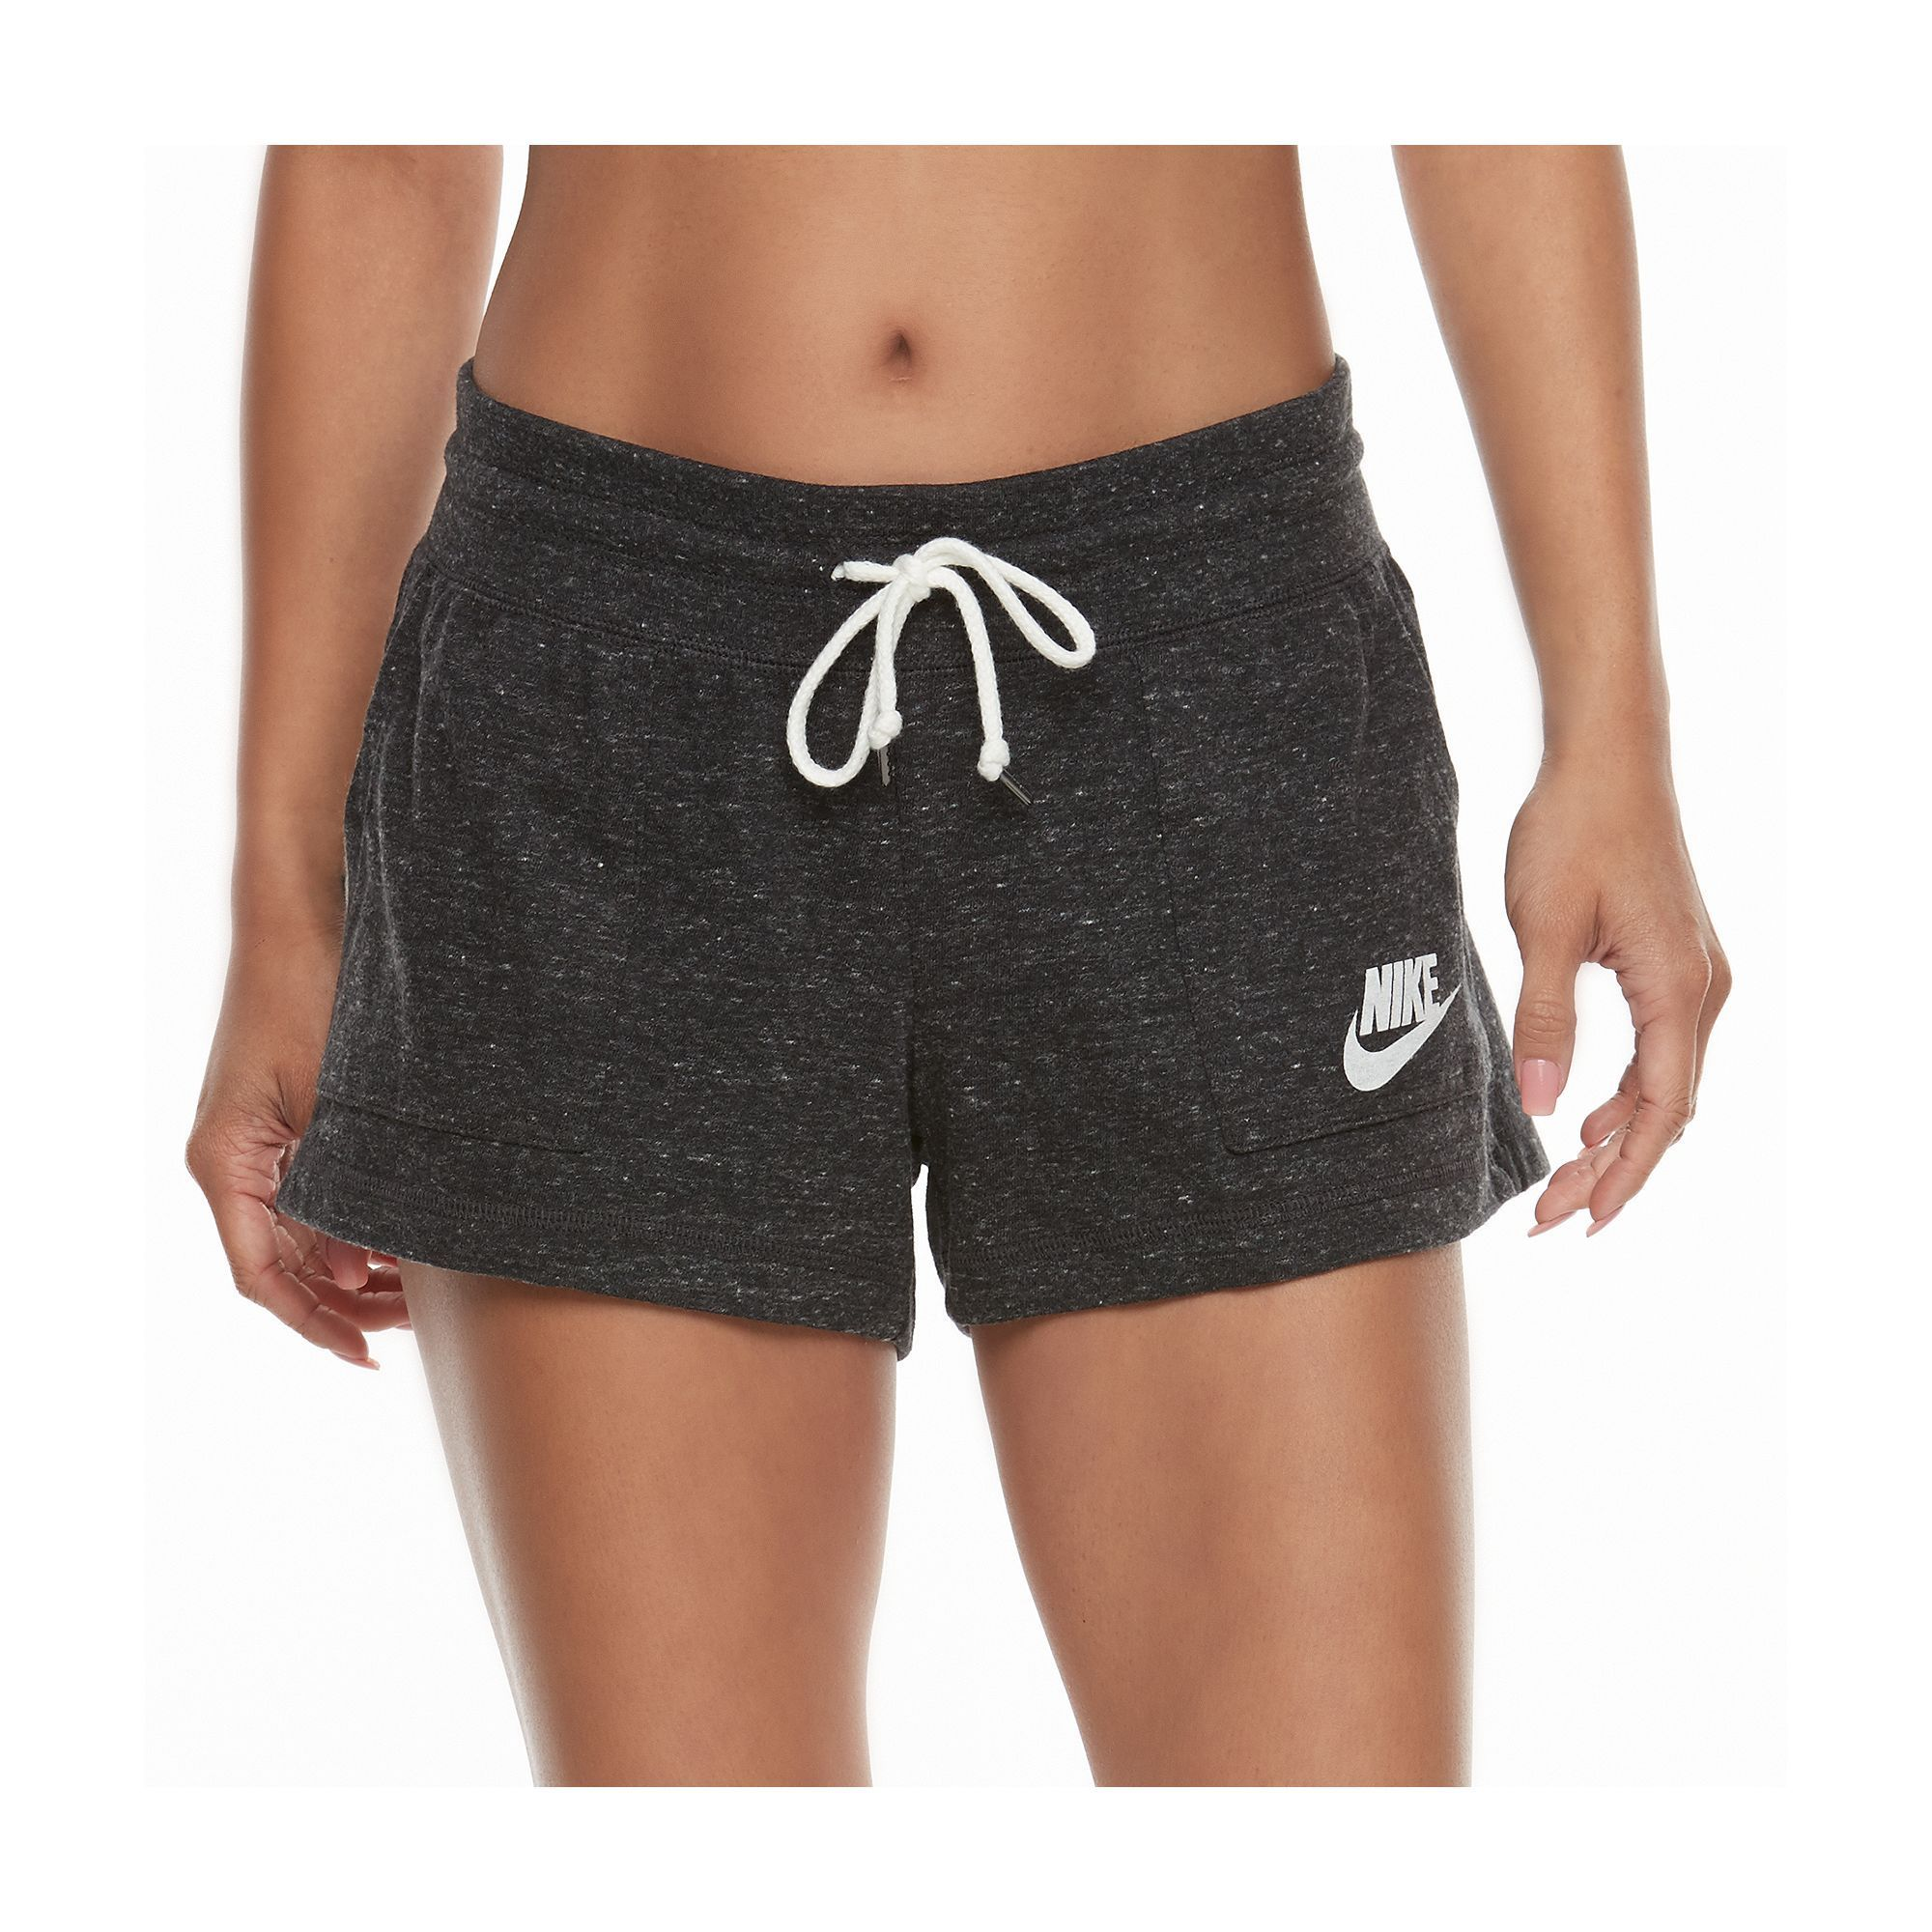 a032c0123f378a Women's Nike Classic Gym Vintage Shorts in 2019 | Products | Vintage ...